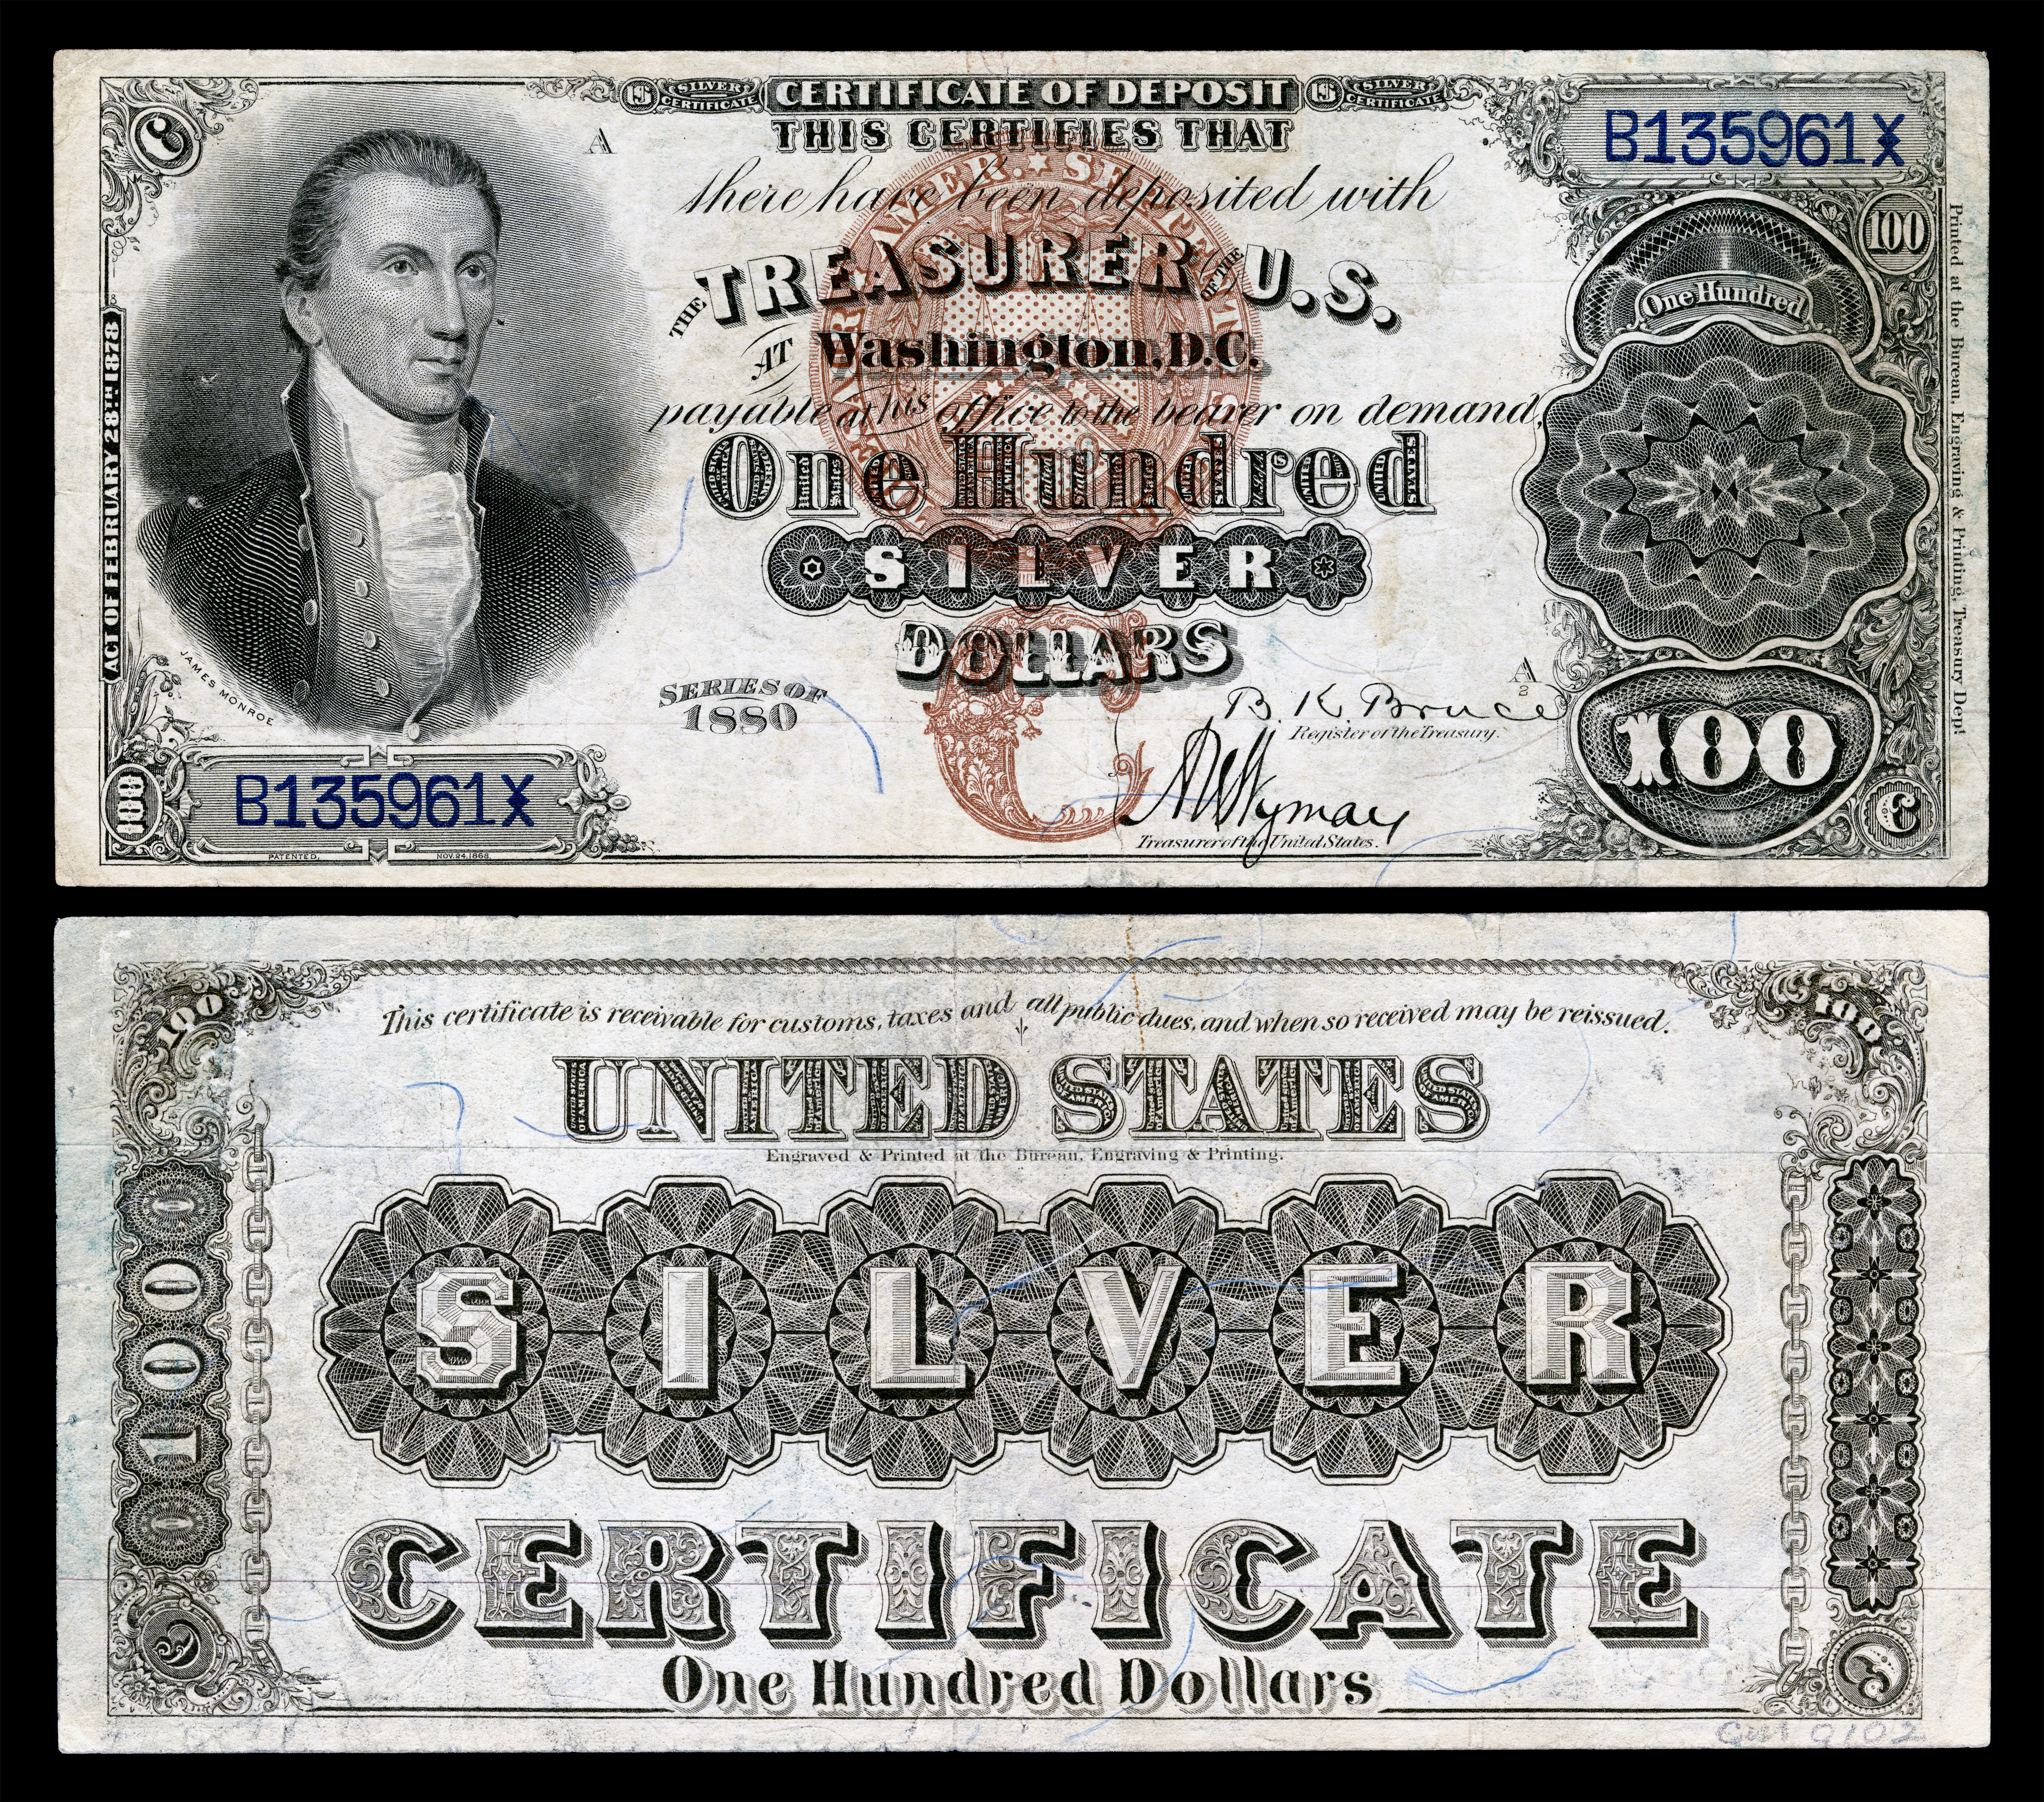 100 year silver value chart edgrafik 100 year silver value chart silver certificate united states wikipediachart xflitez Images